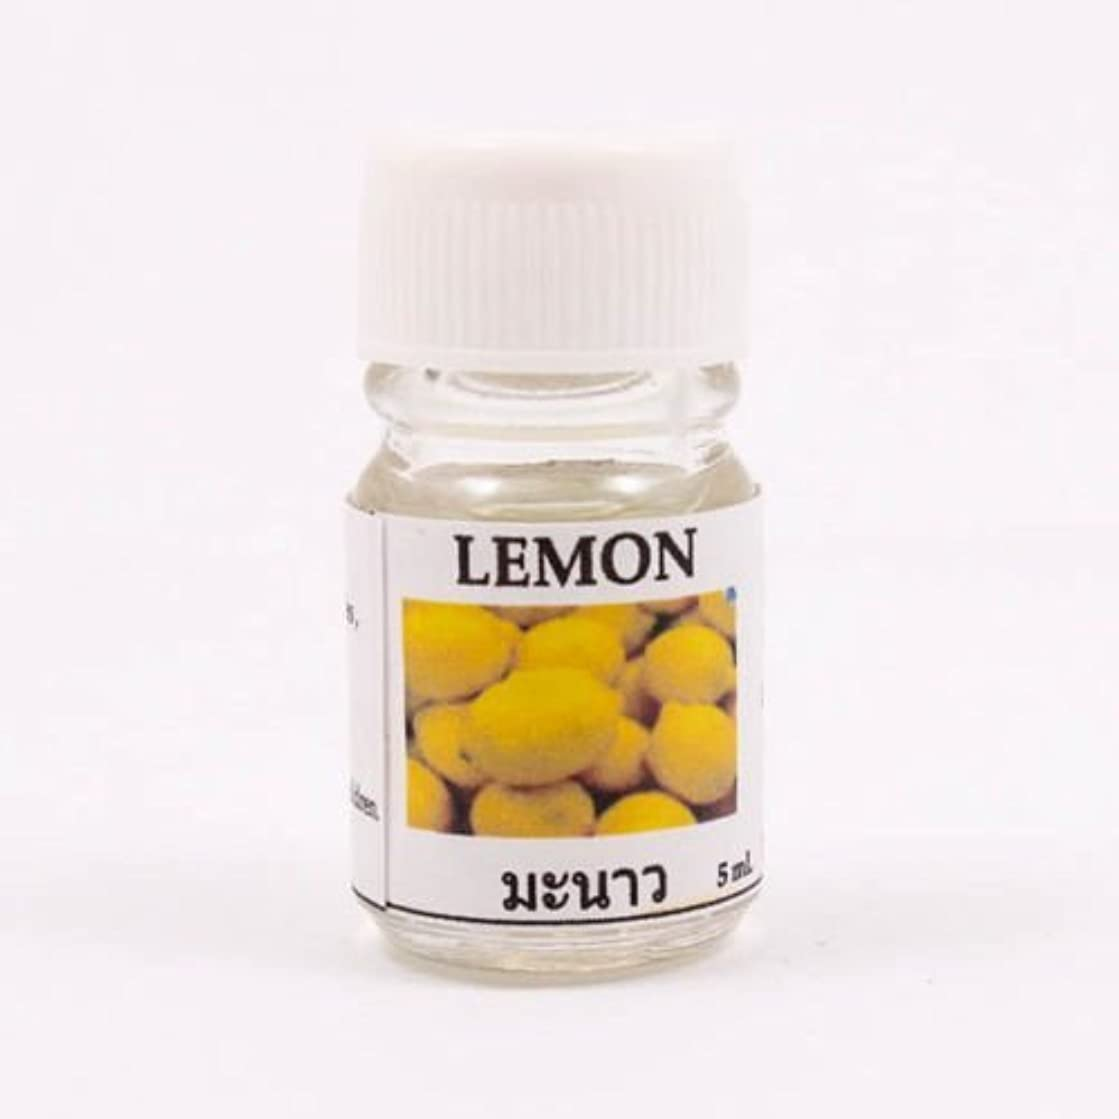 検索エンジンマーケティングスローガン経験6X Lemon Aroma Fragrance Essential Oil 5ML. (cc) Diffuser Burner Therapy